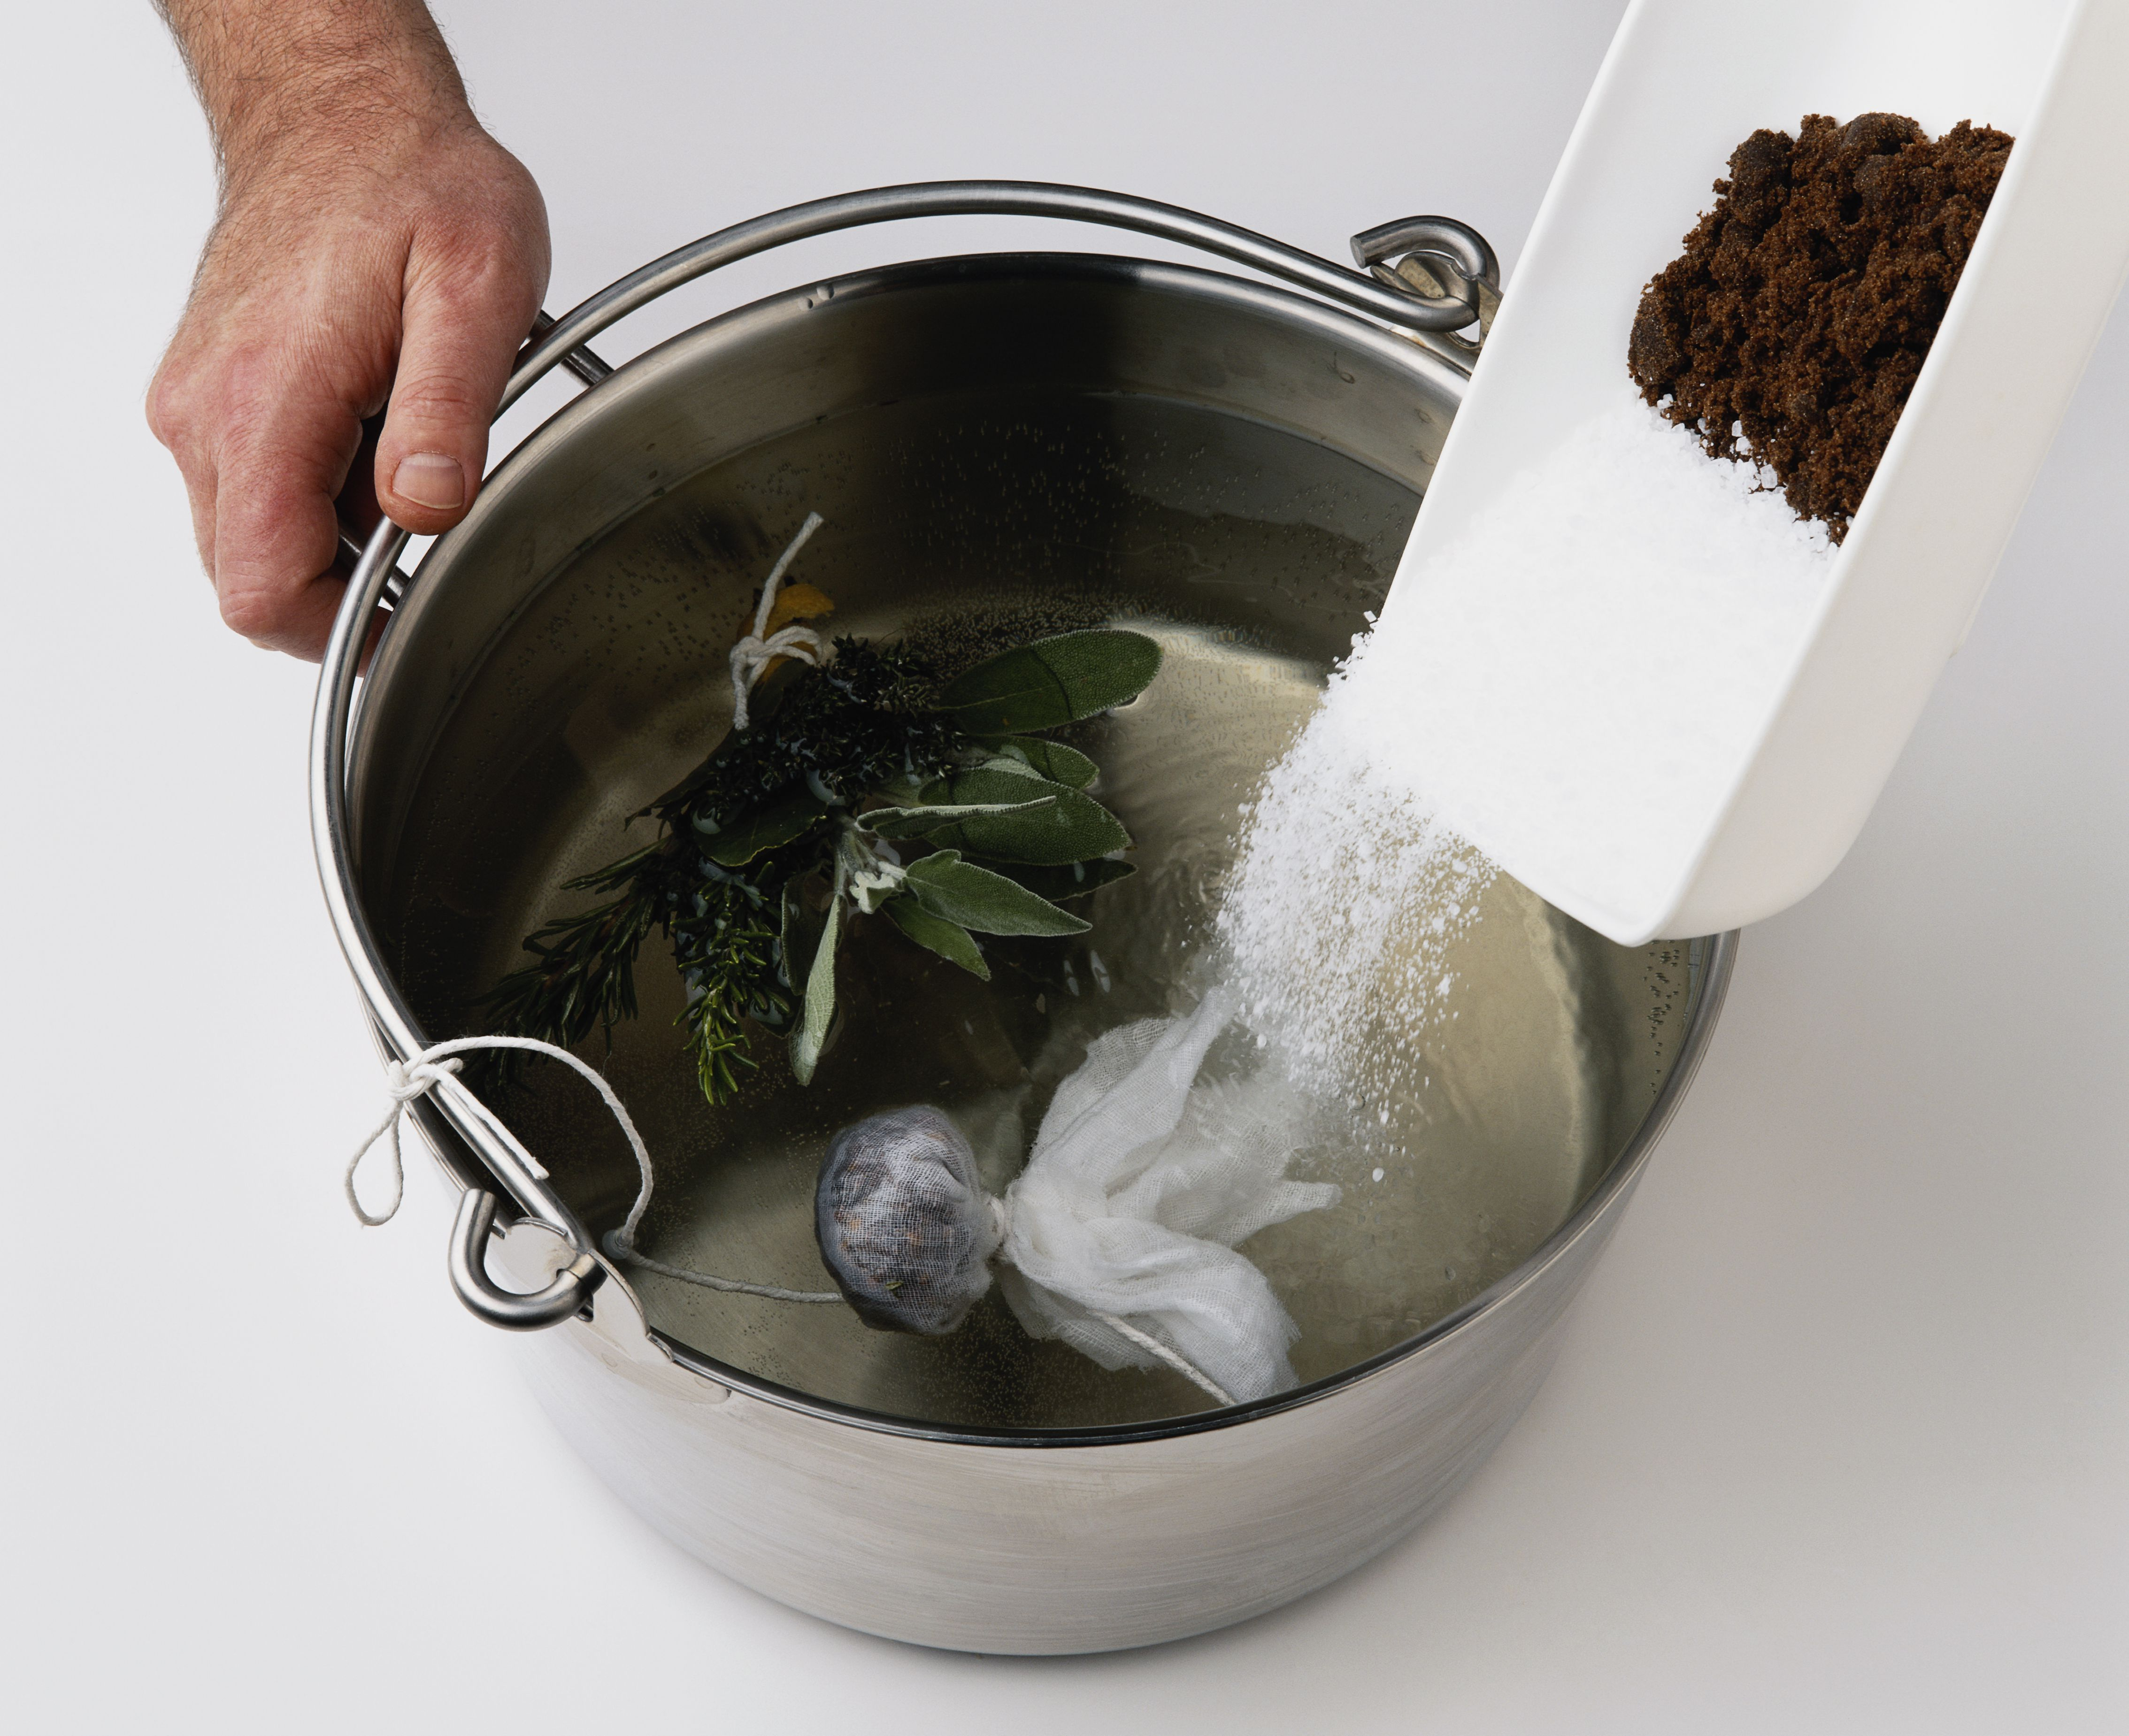 does adding salt lower the boiling point of water